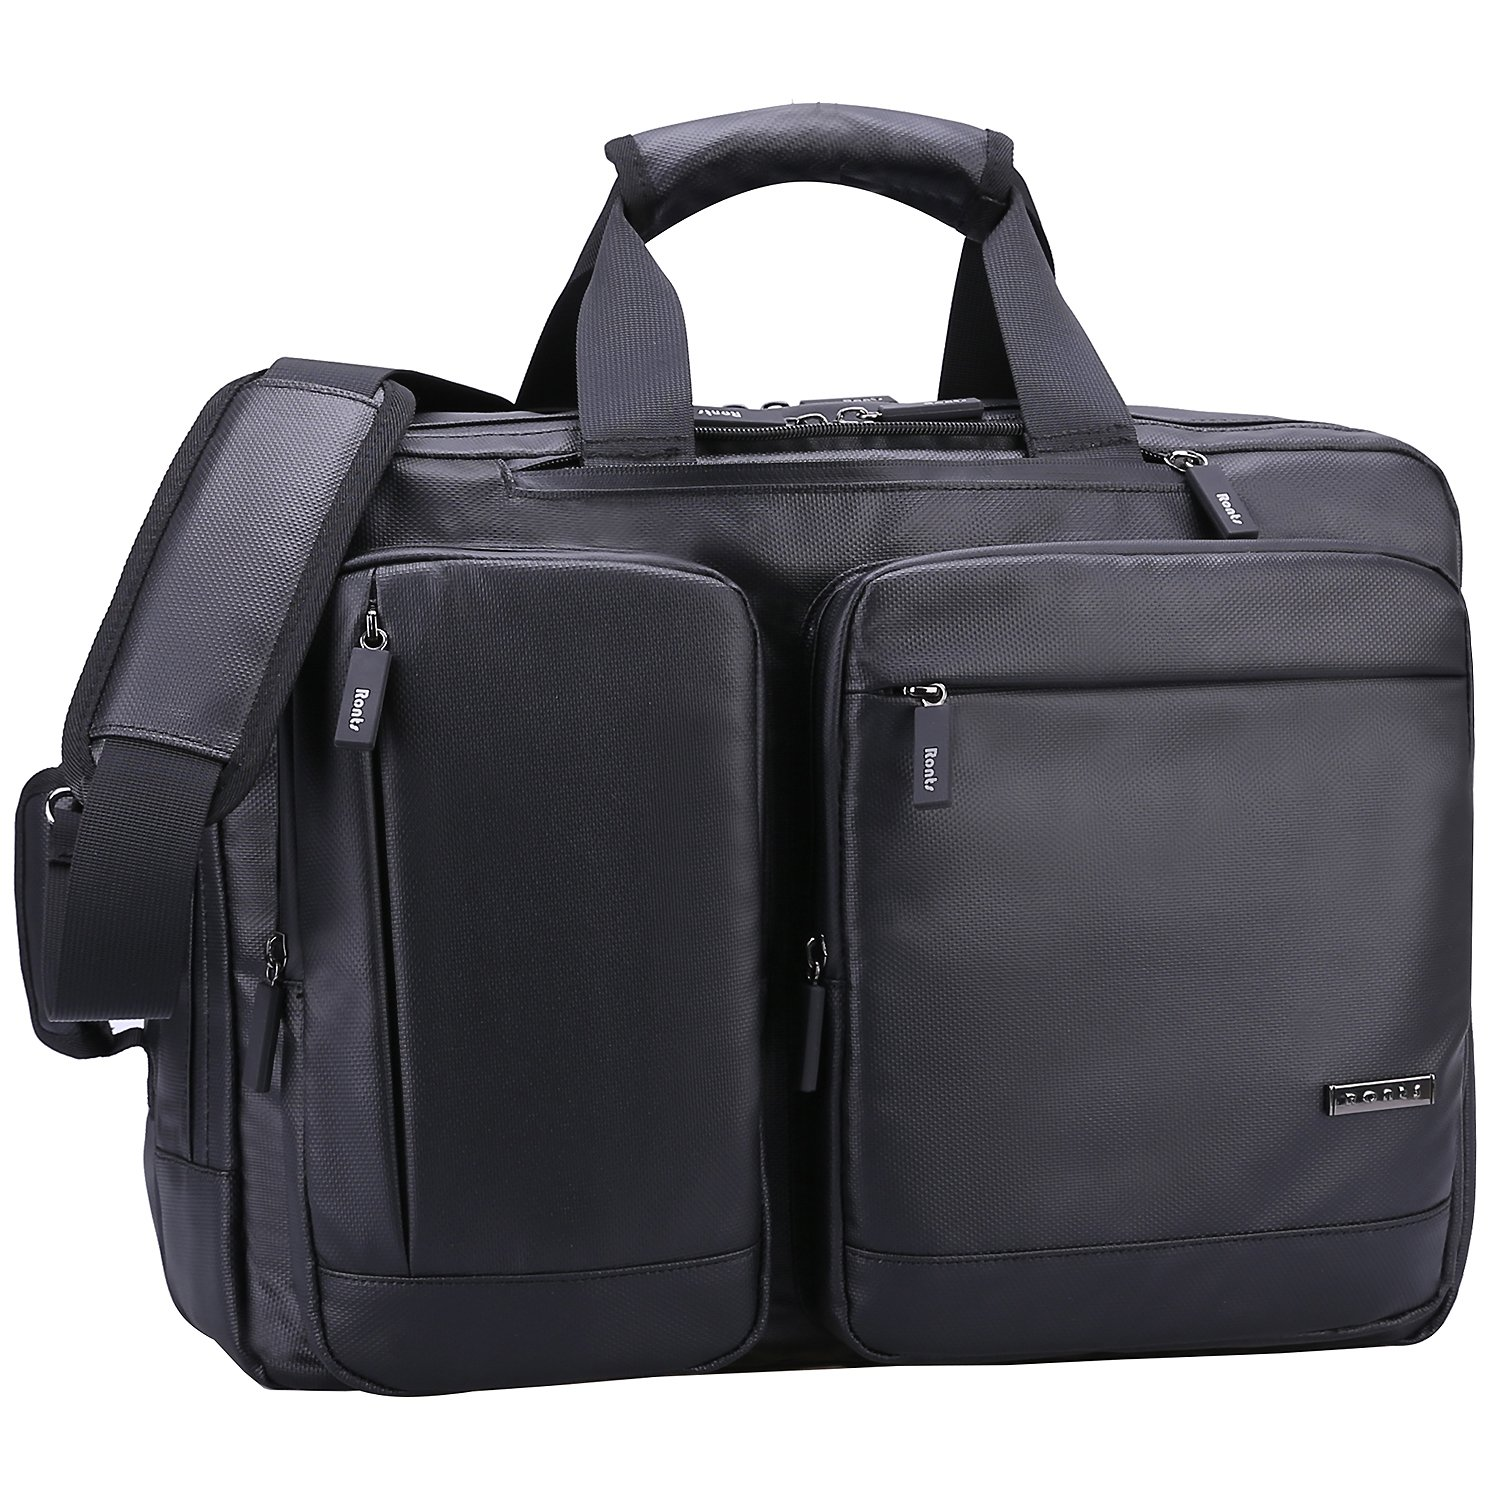 46c4fb5f64 Ronts Convertible Briefcase Backpack Multifunctional Waterproof 17 Inch Laptop  Case 1-2 Days Portable Travel Business Messenger Shoulder Bag for Men Women